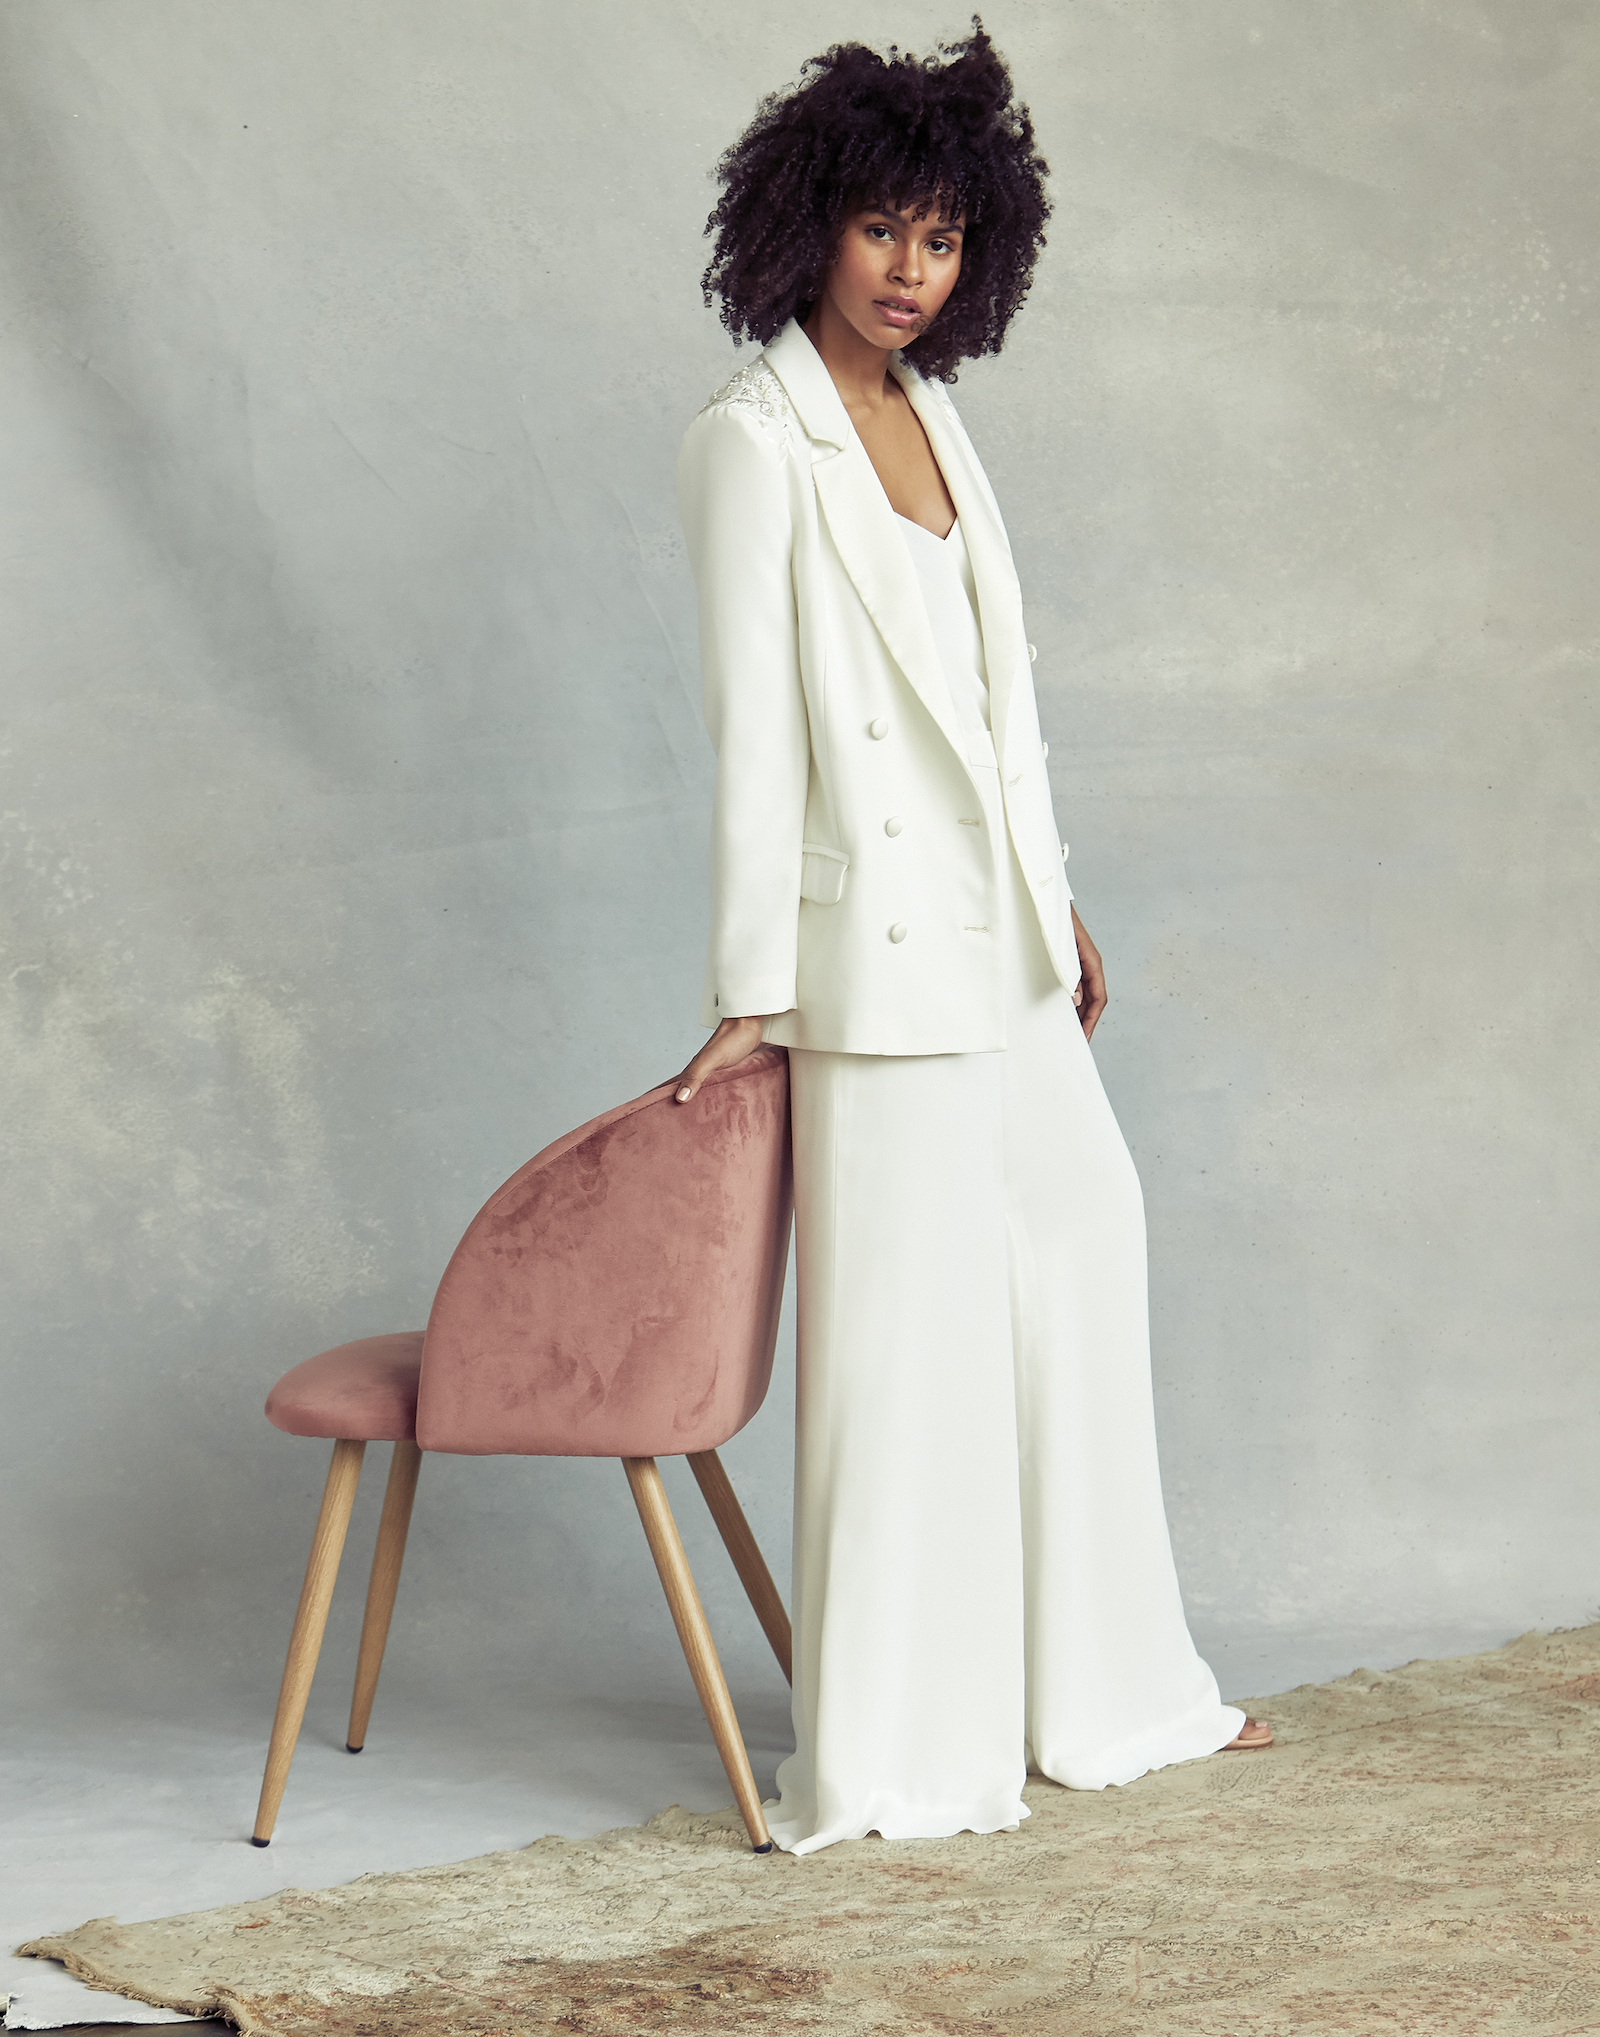 Bridal Blazer Spring 2020 Wedding Dress Trends Savannah MIller